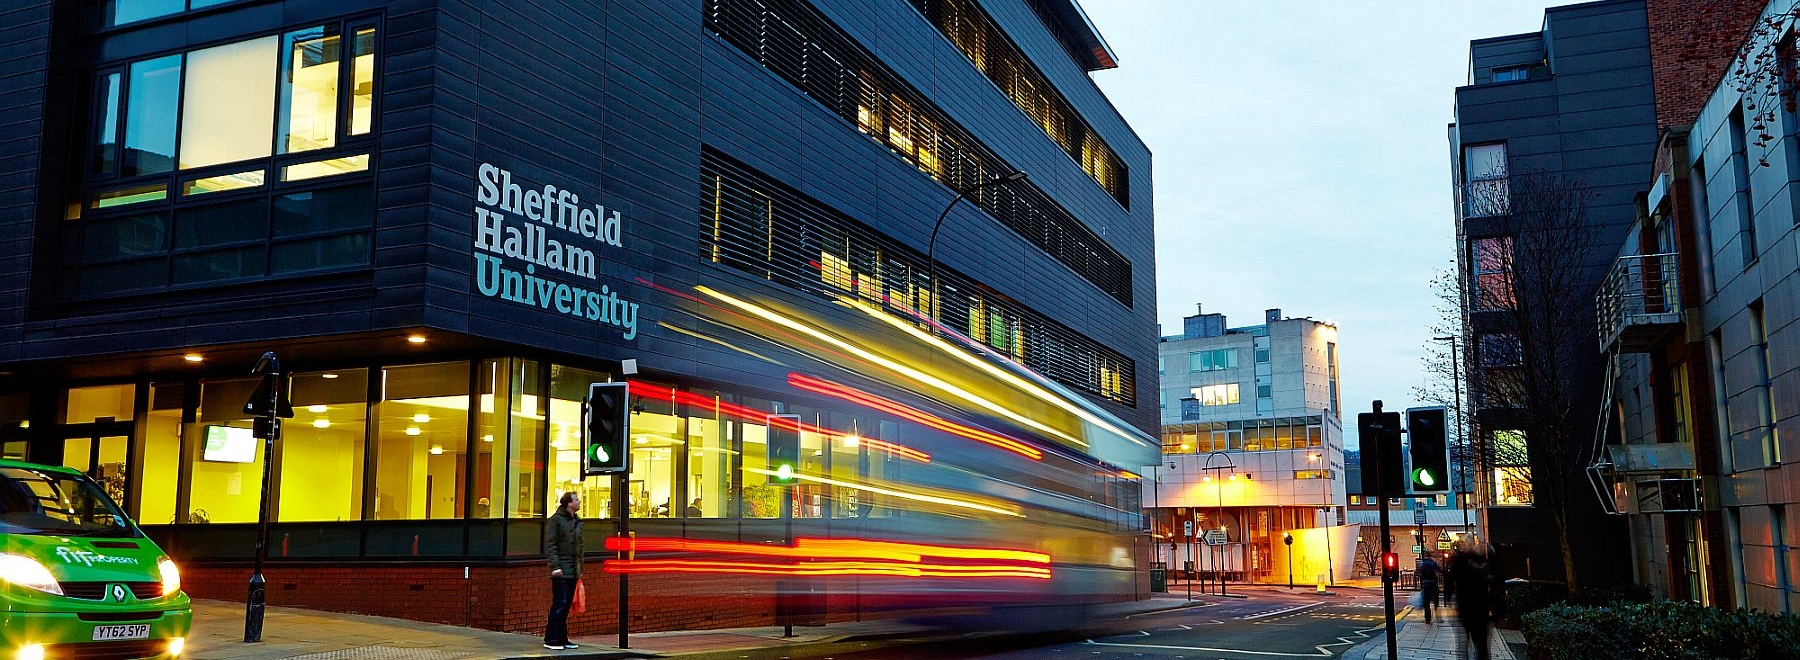 Sheffield Hallam University header